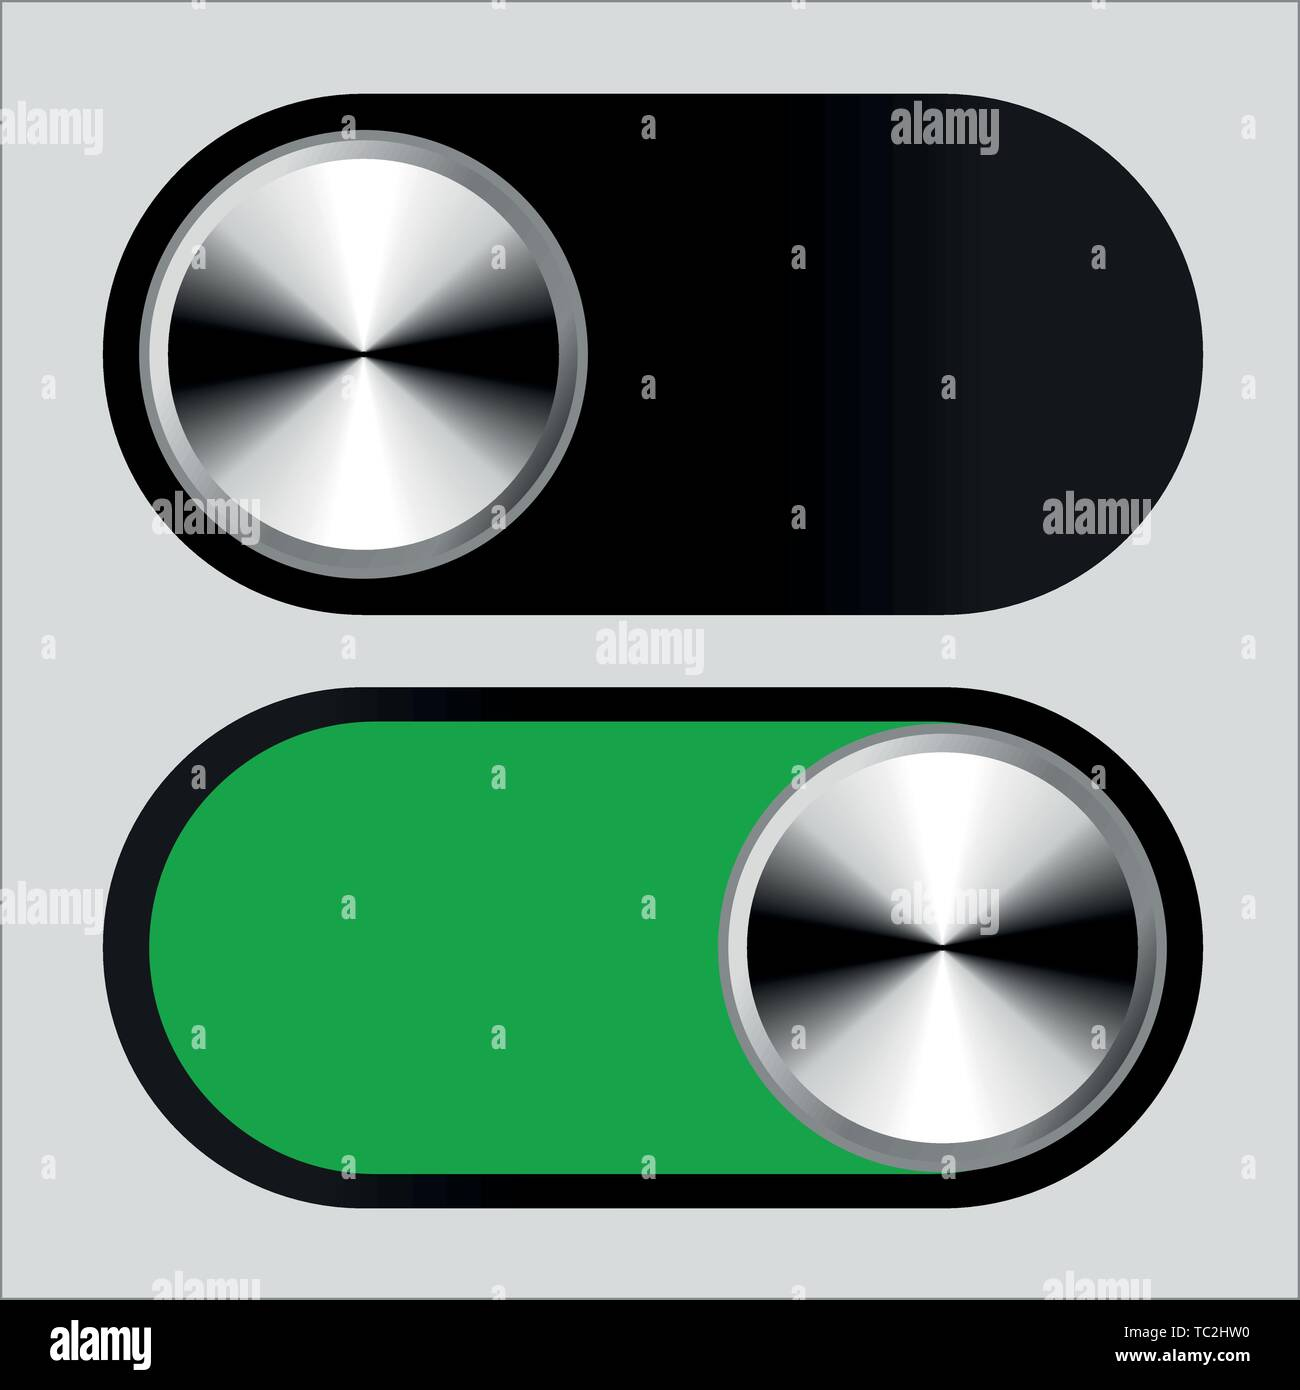 Vector illustration. Switch symbol in on and off positions. Metallic style. - Stock Vector